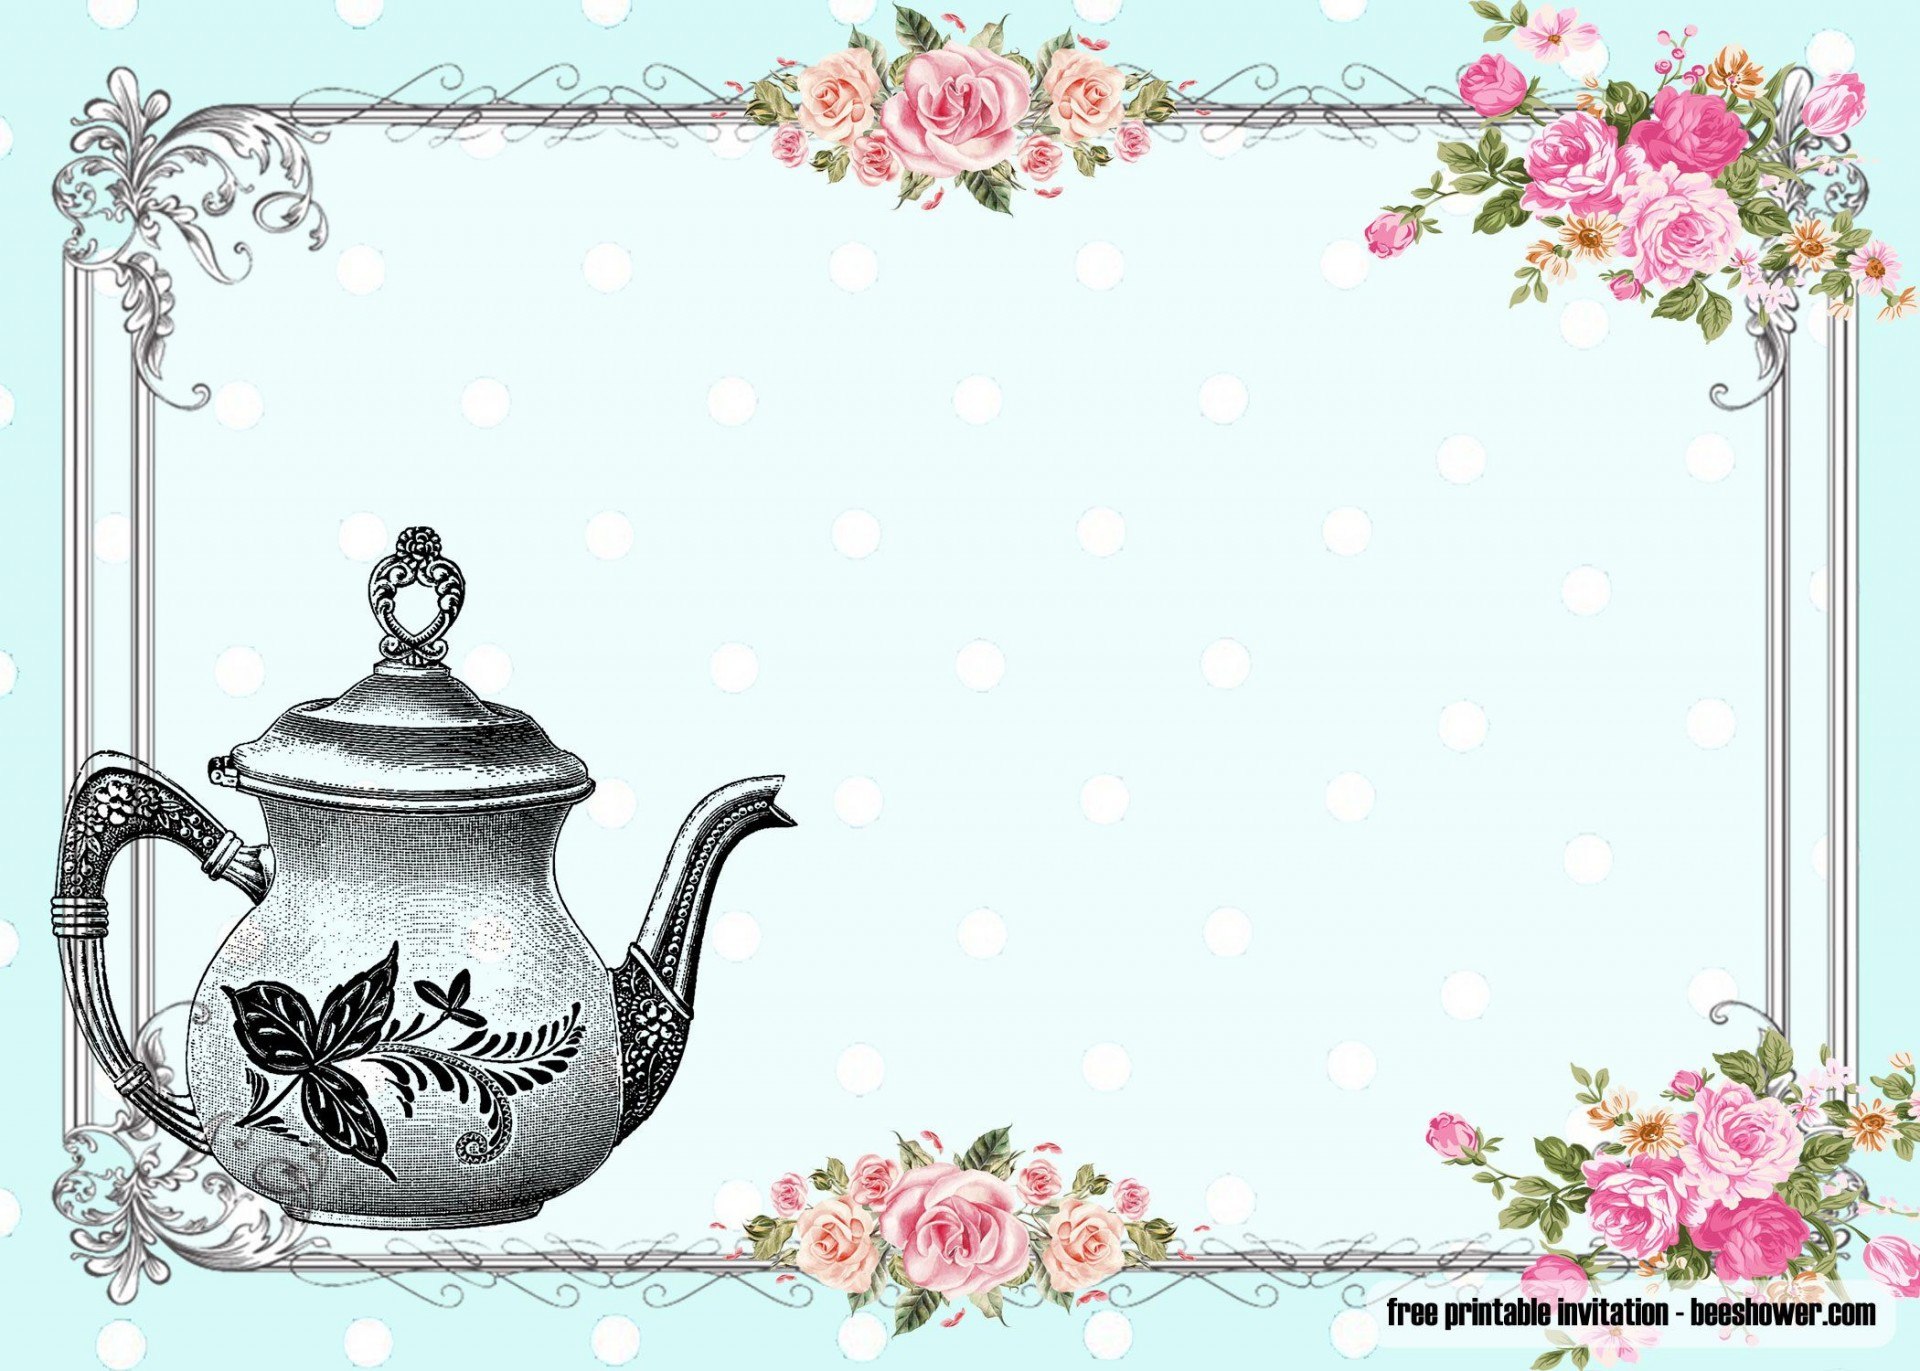 010 Awful Tea Party Invitation Template Idea  Vintage Free Editable Card Pdf1920